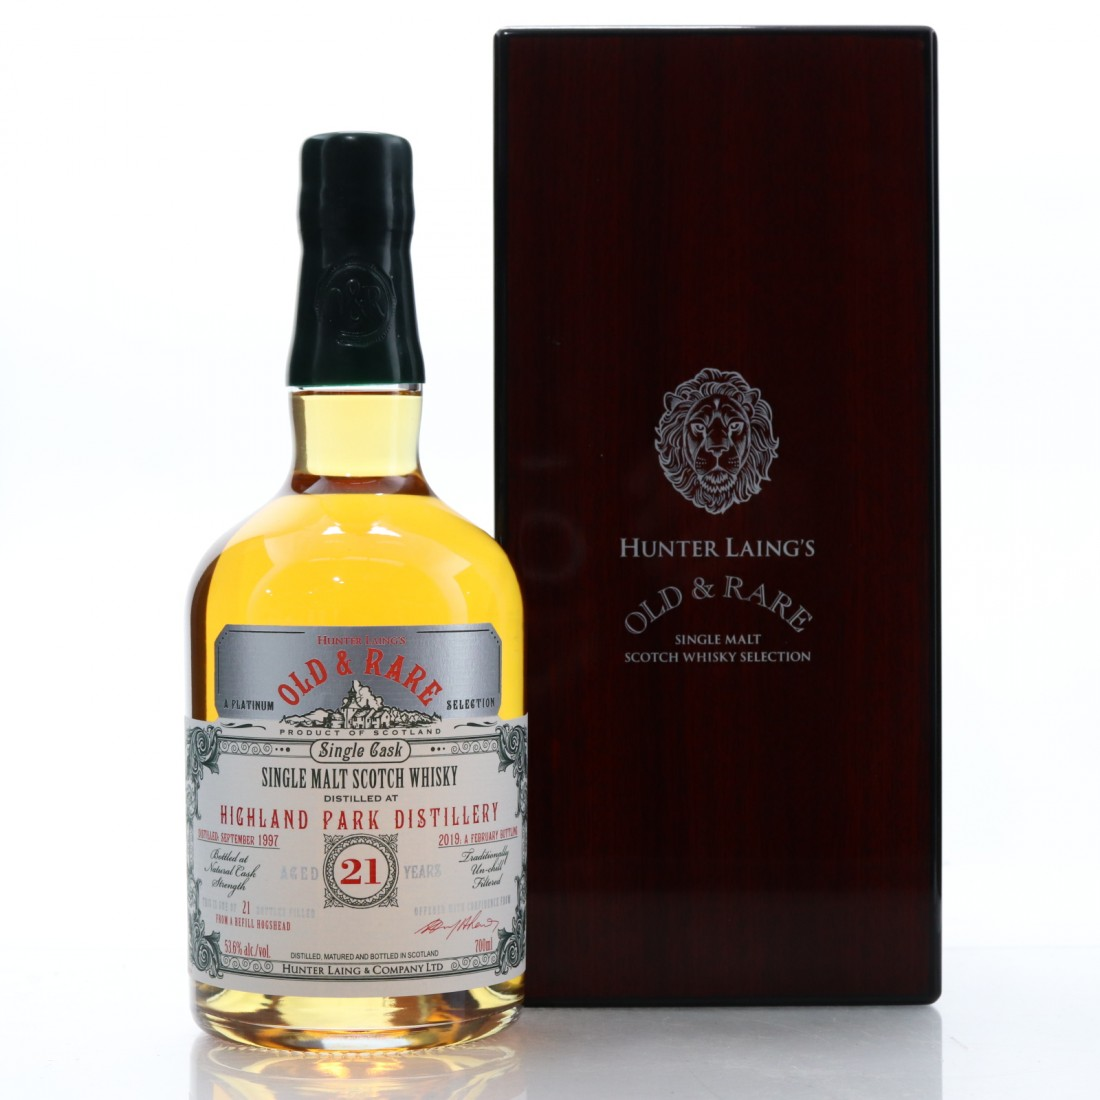 Highland Park 1997 Hunter Laing 21 Year Old / Old and Rare